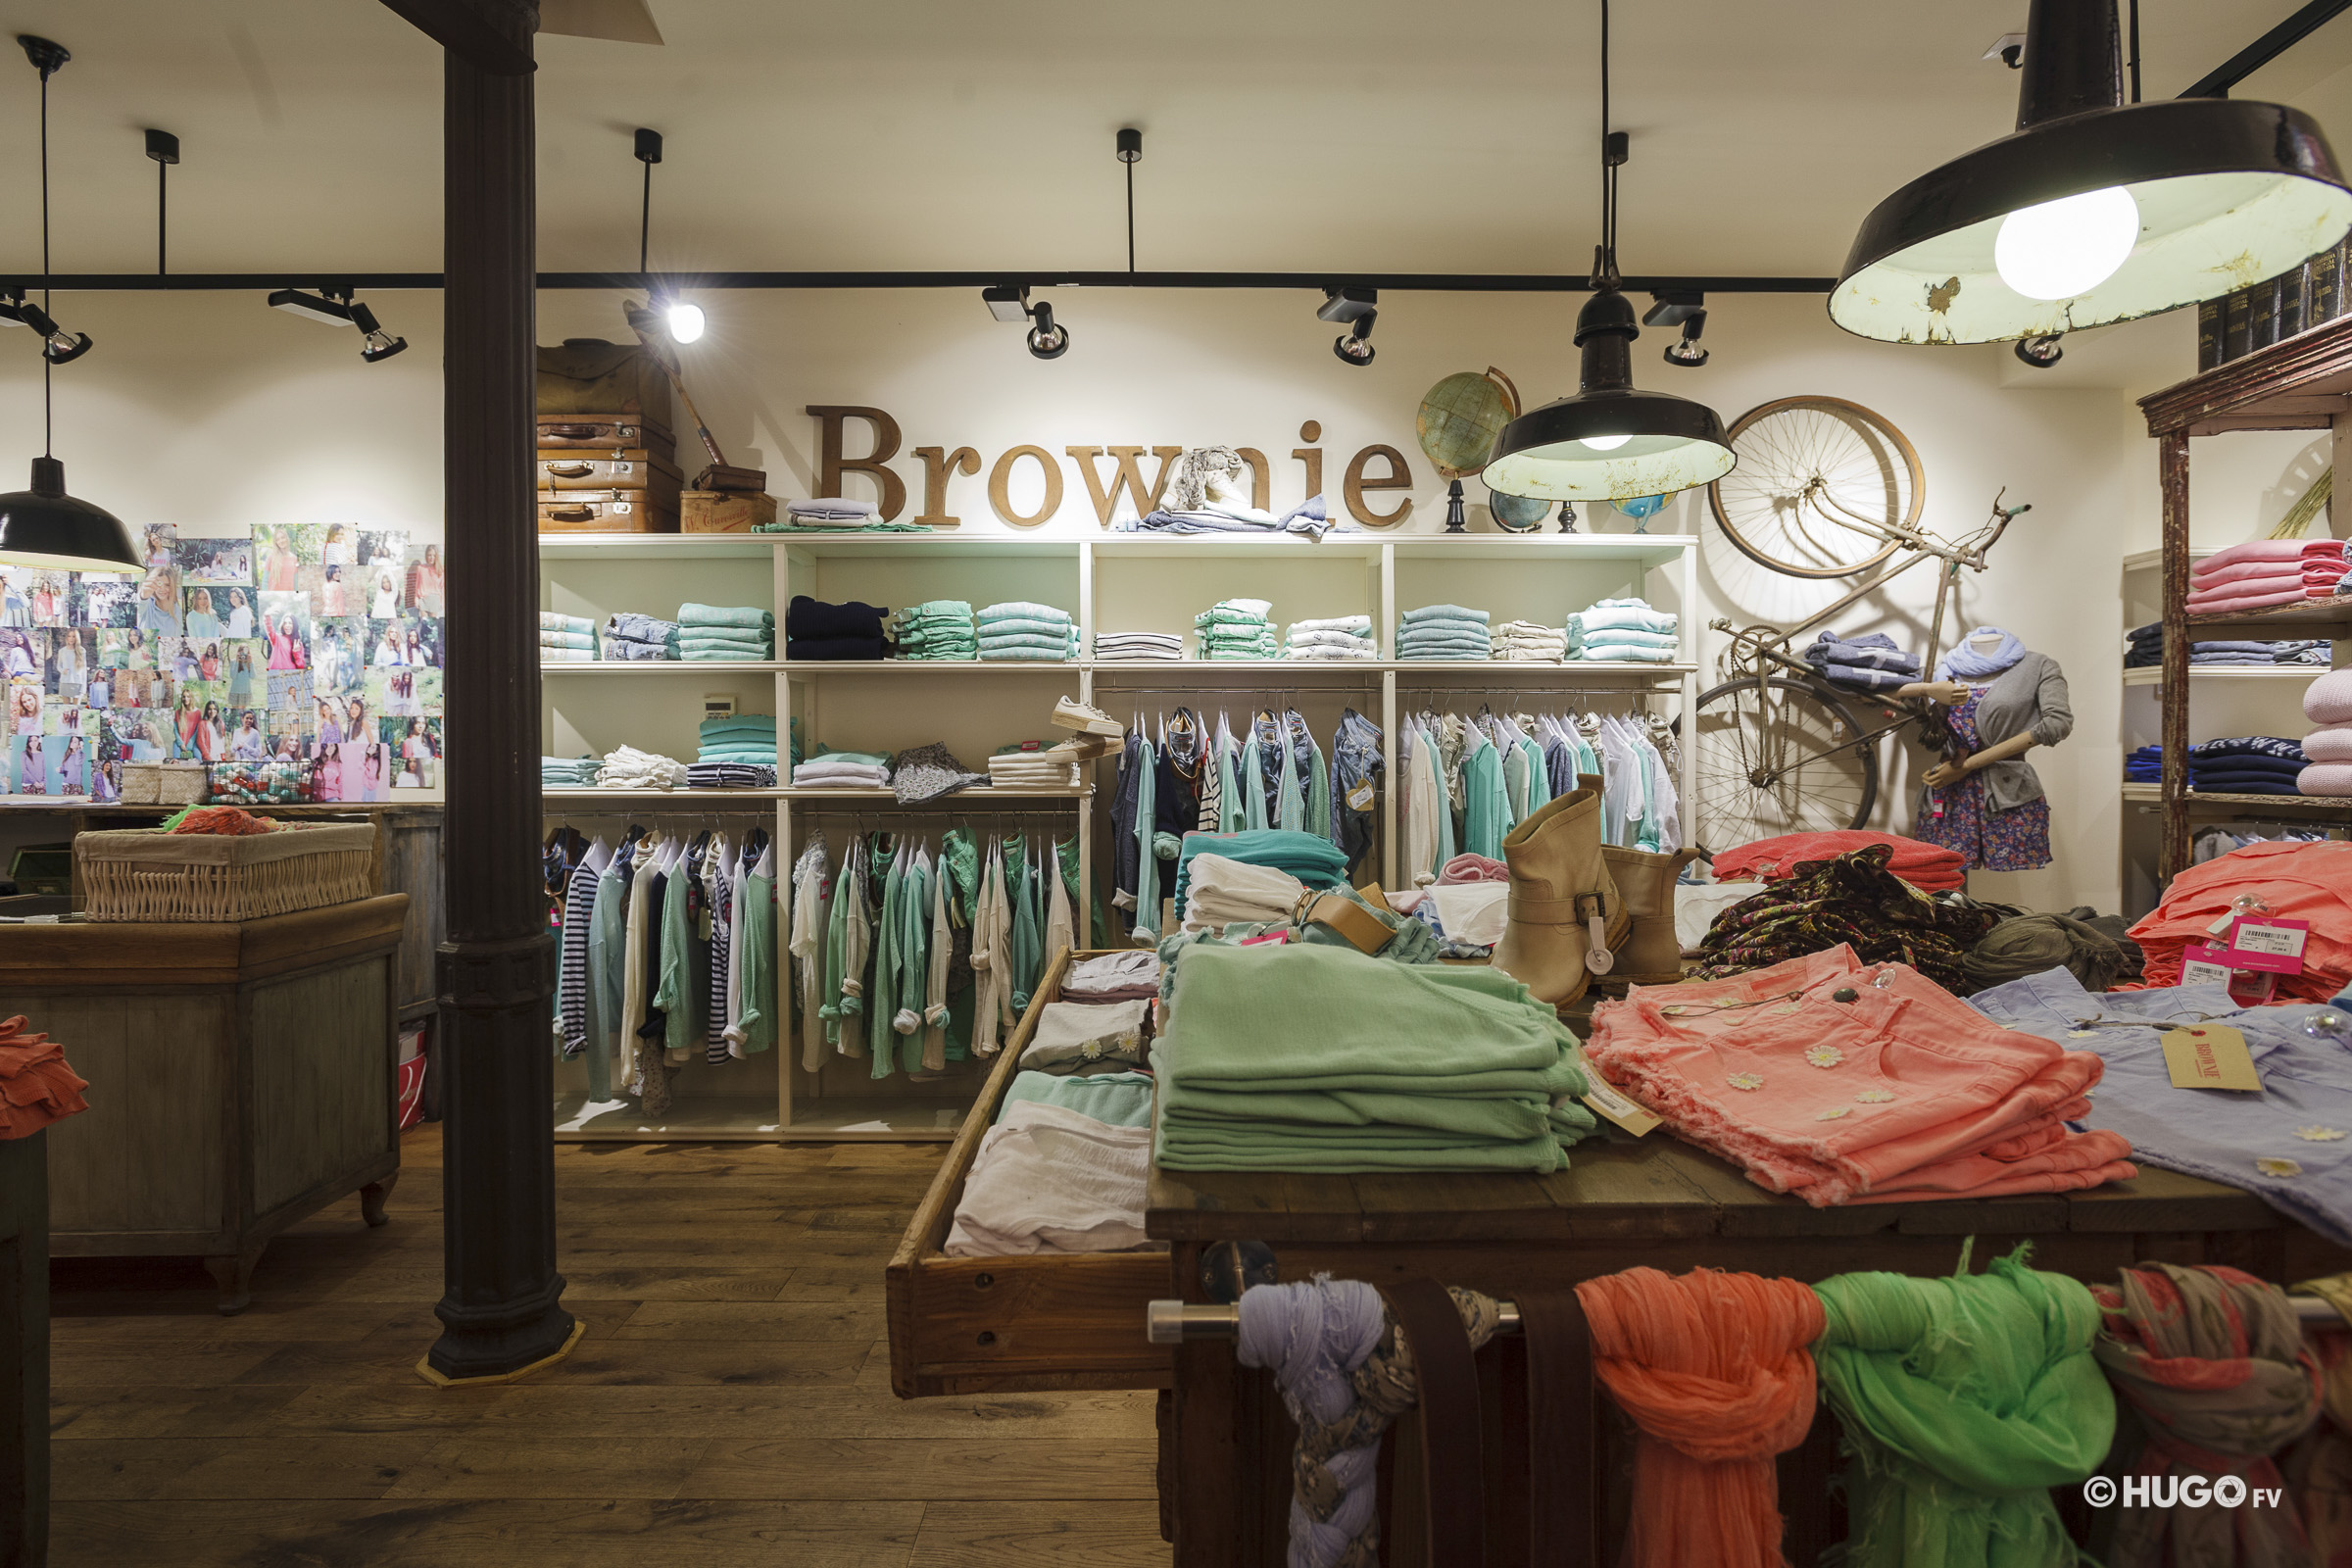 Brownie store inside